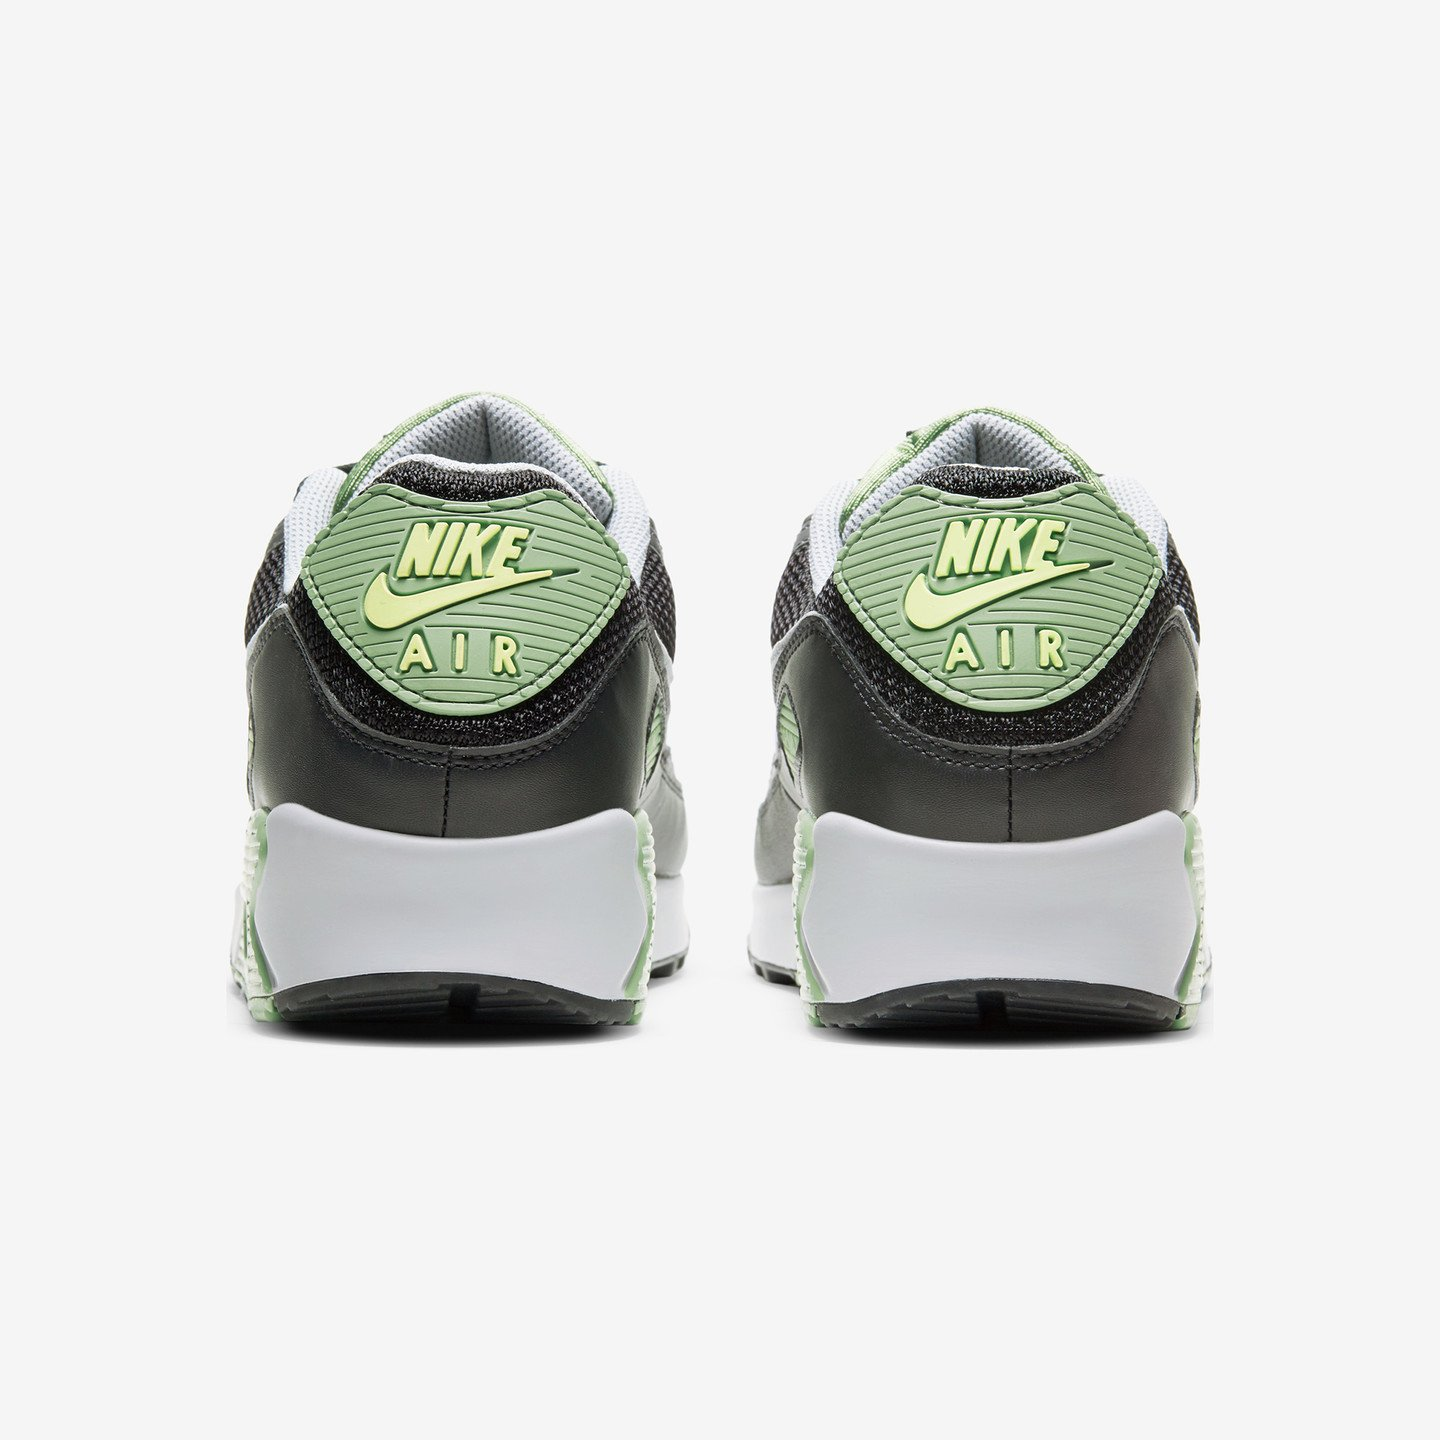 Nike Air Max 90 Oil Green / Lt  Smoke Grey / Black / Iron Grey CV8839-300